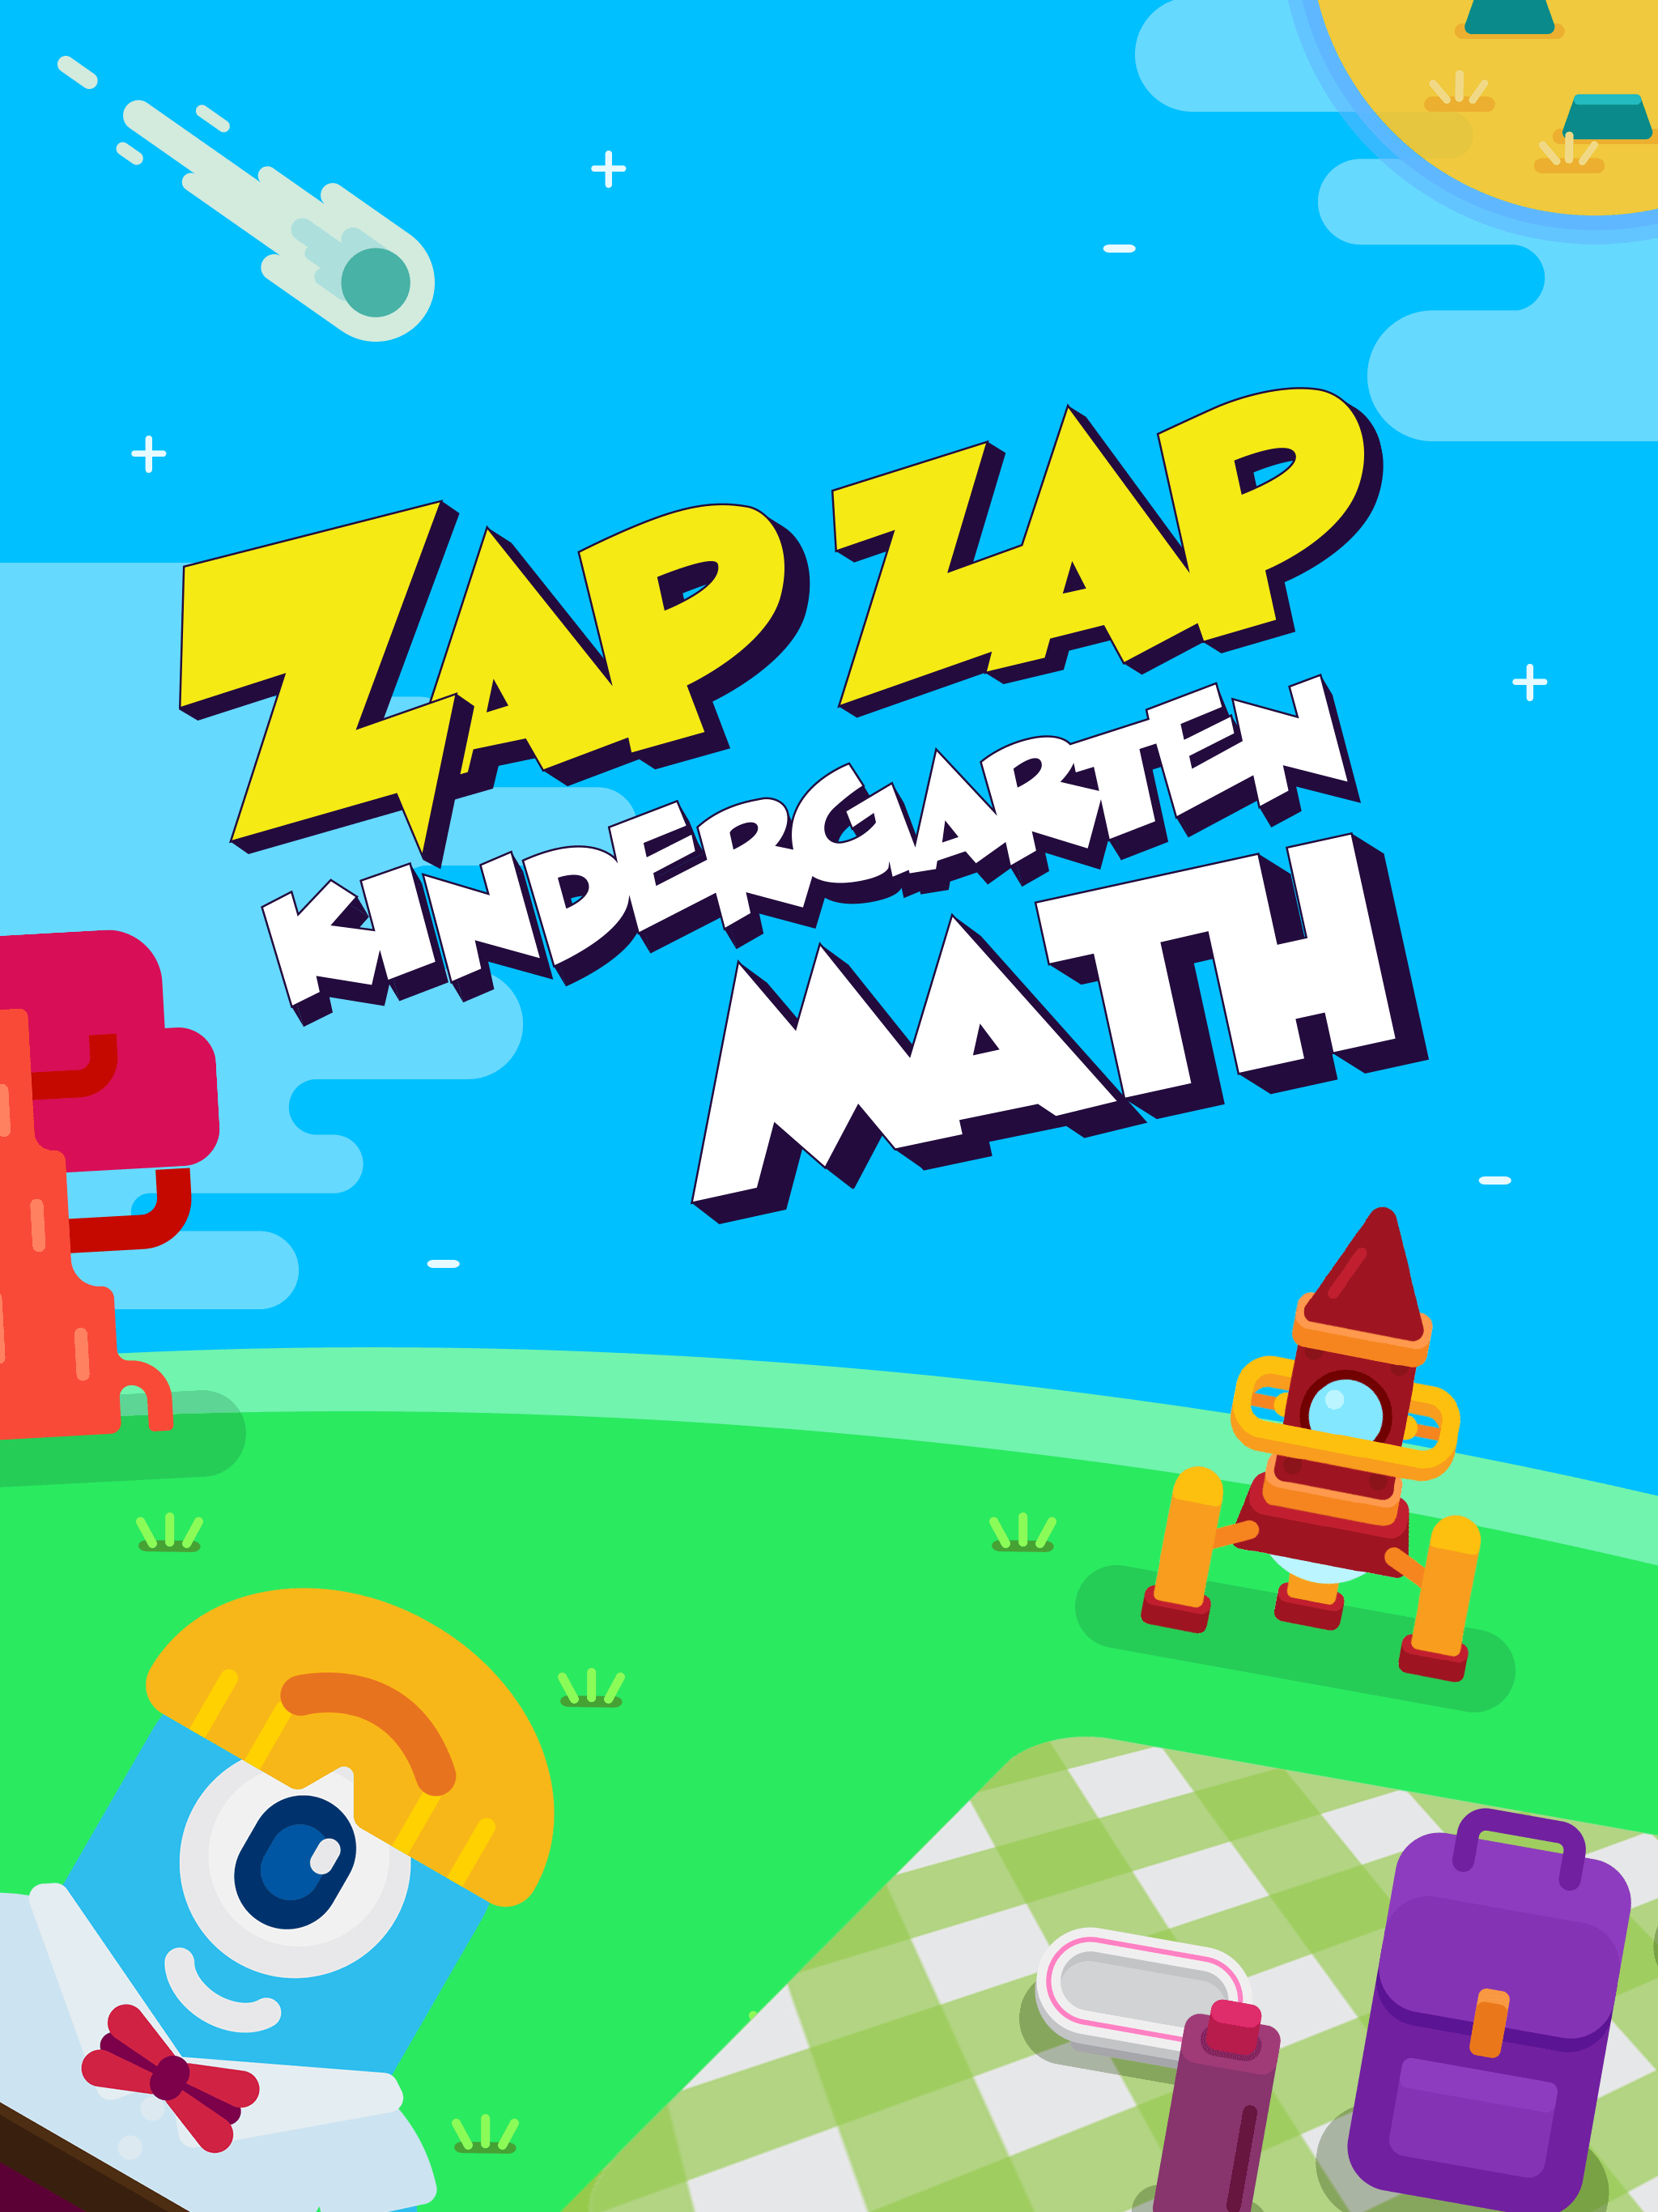 Kindergarten Math for Kids | Zapzapmath